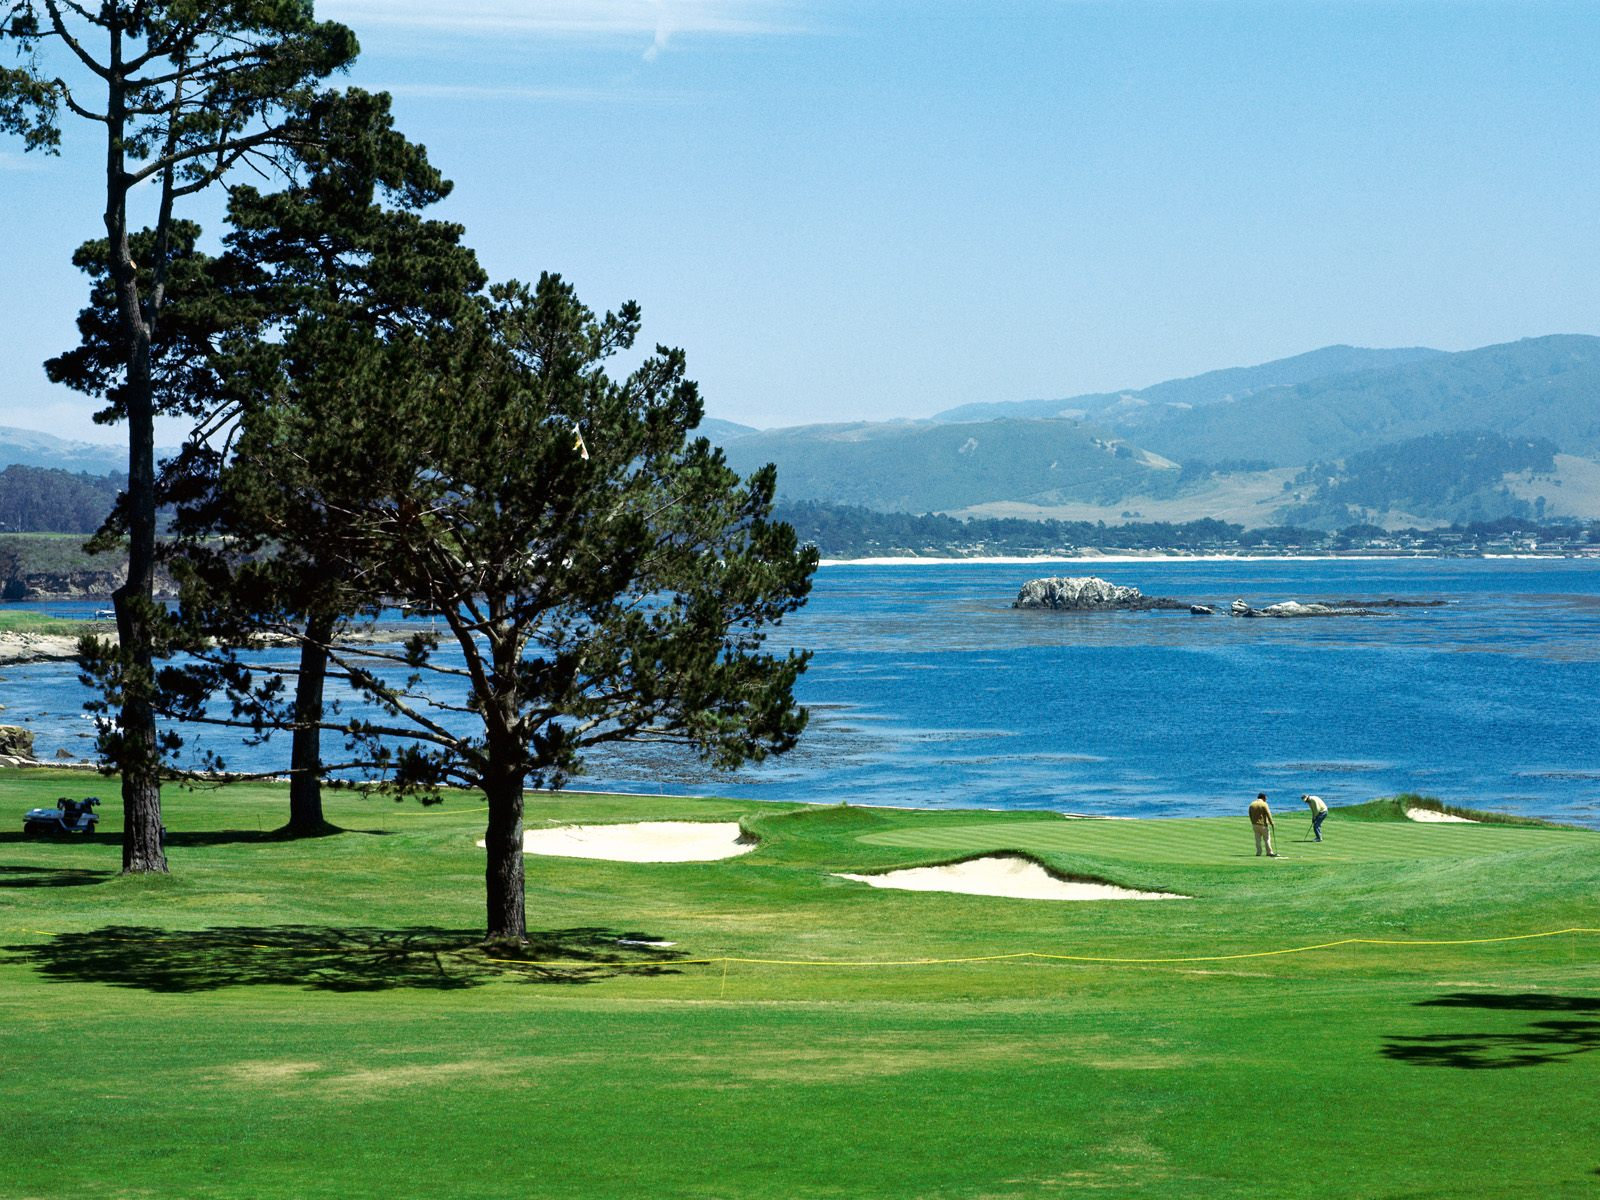 77 best <b>Golf Wallpaper</b> and Images images on Pinterest